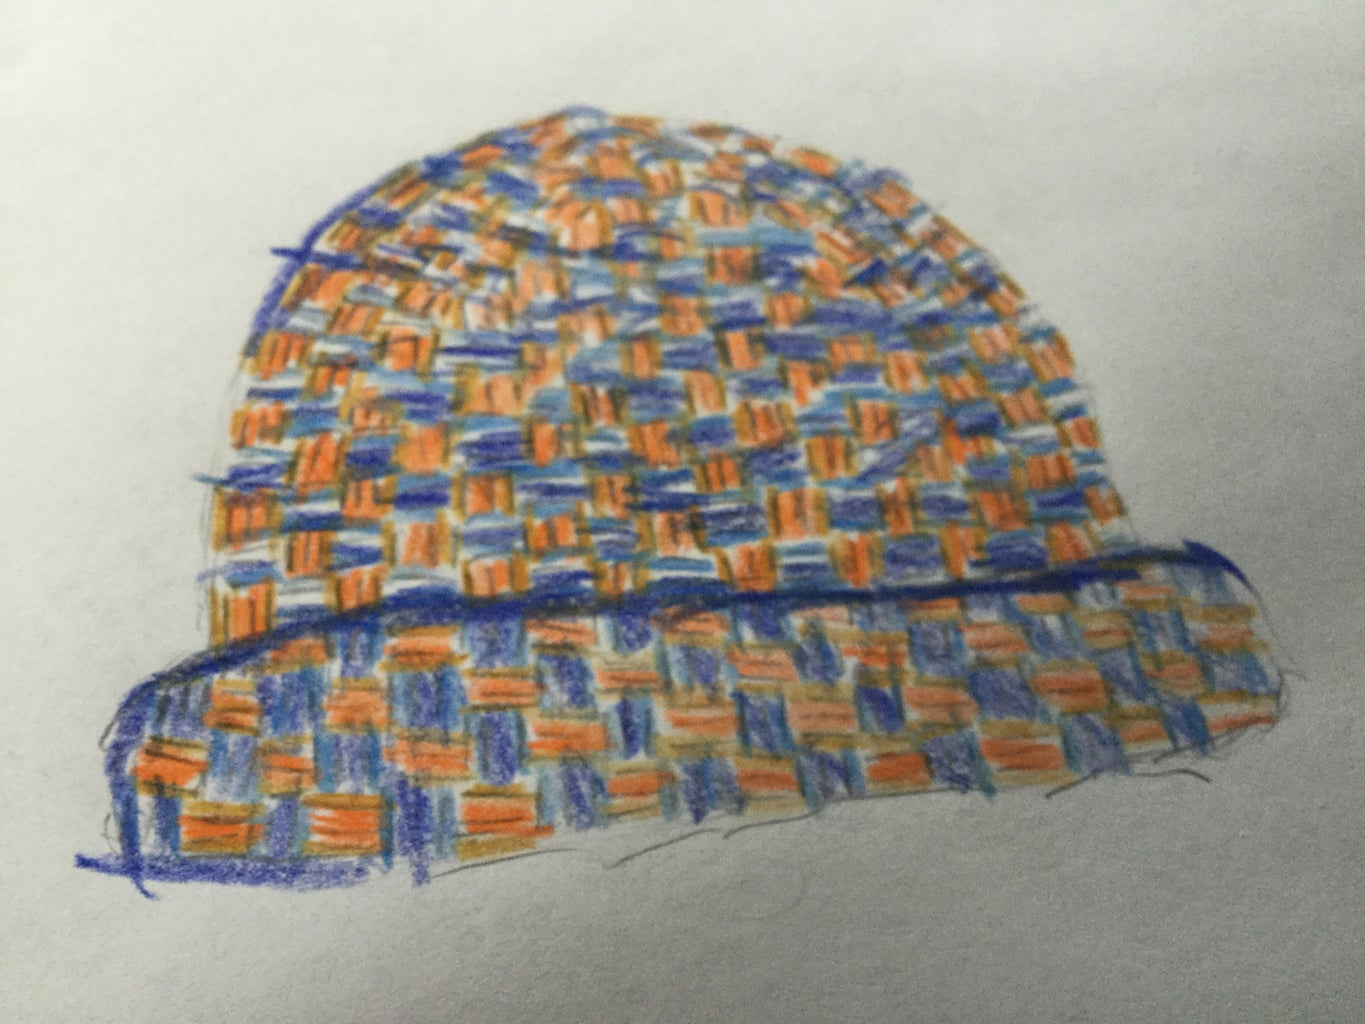 How to Draw a Woven Hat